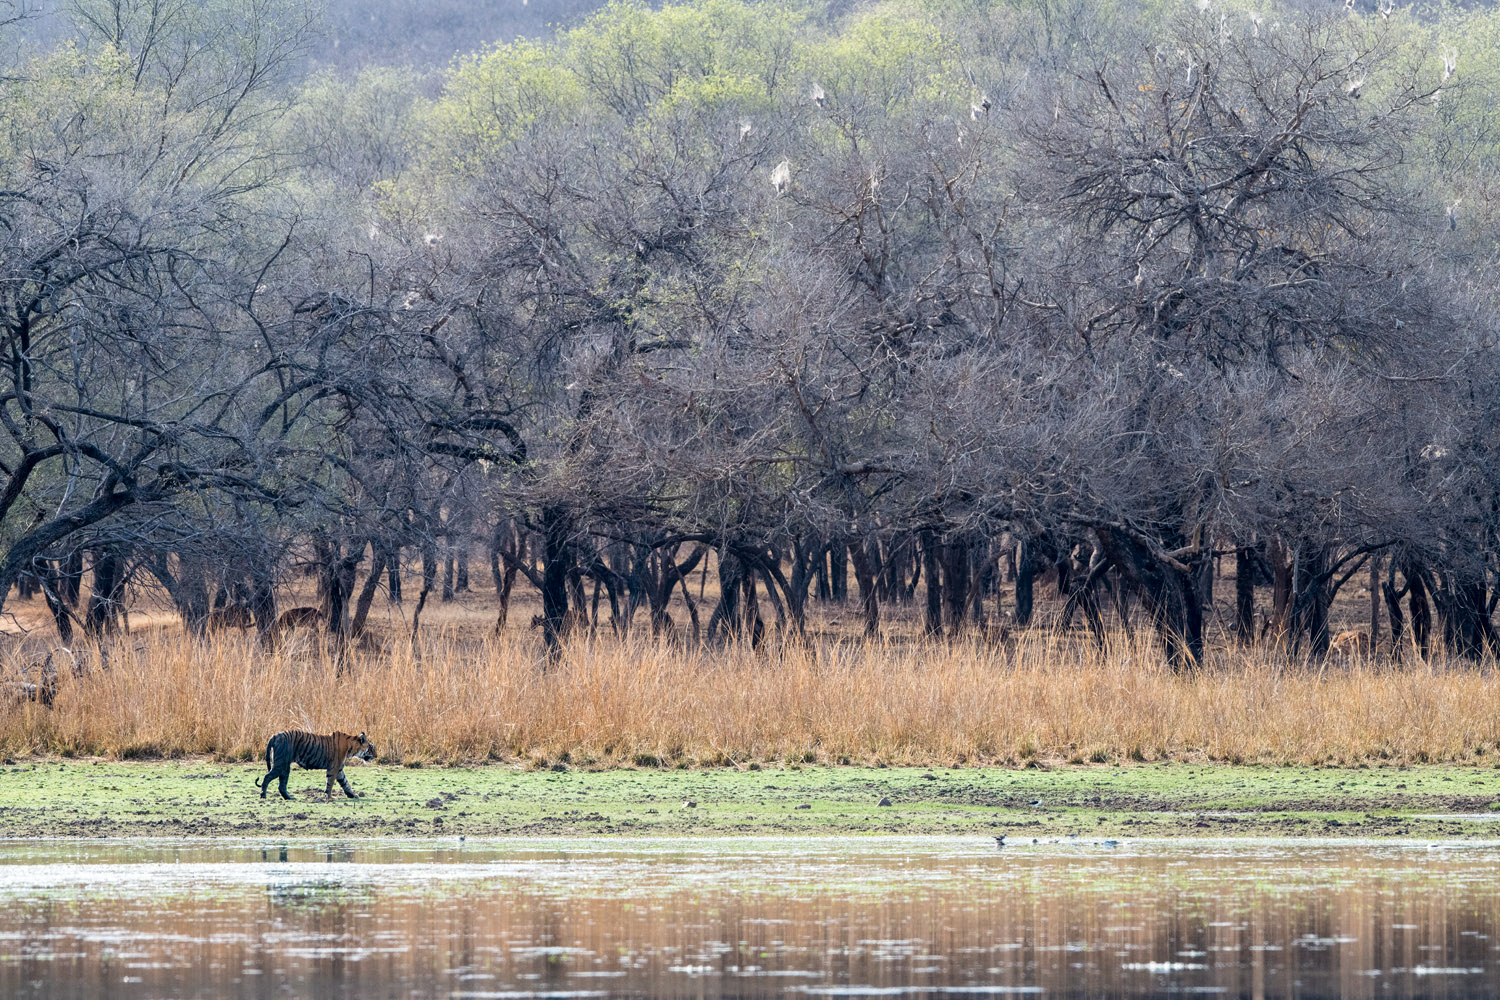 Bengal tigress roaming along edge of lake, Ranthambhore National Park, Rajasthan, India